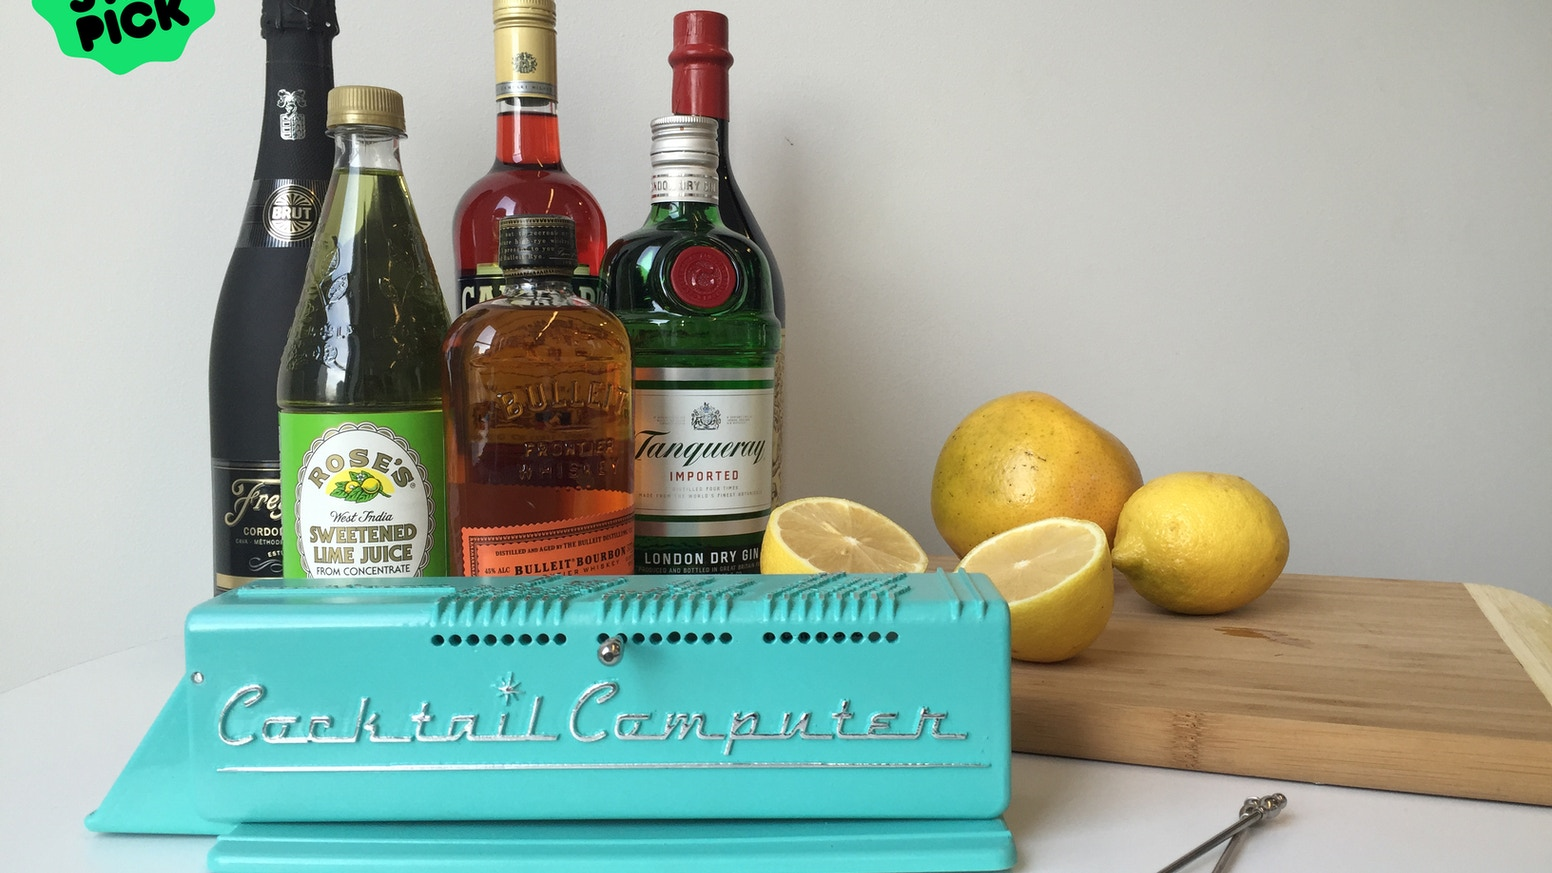 The Cocktail Computer suggests curated cocktail recipes based on the ingredients you have at home.